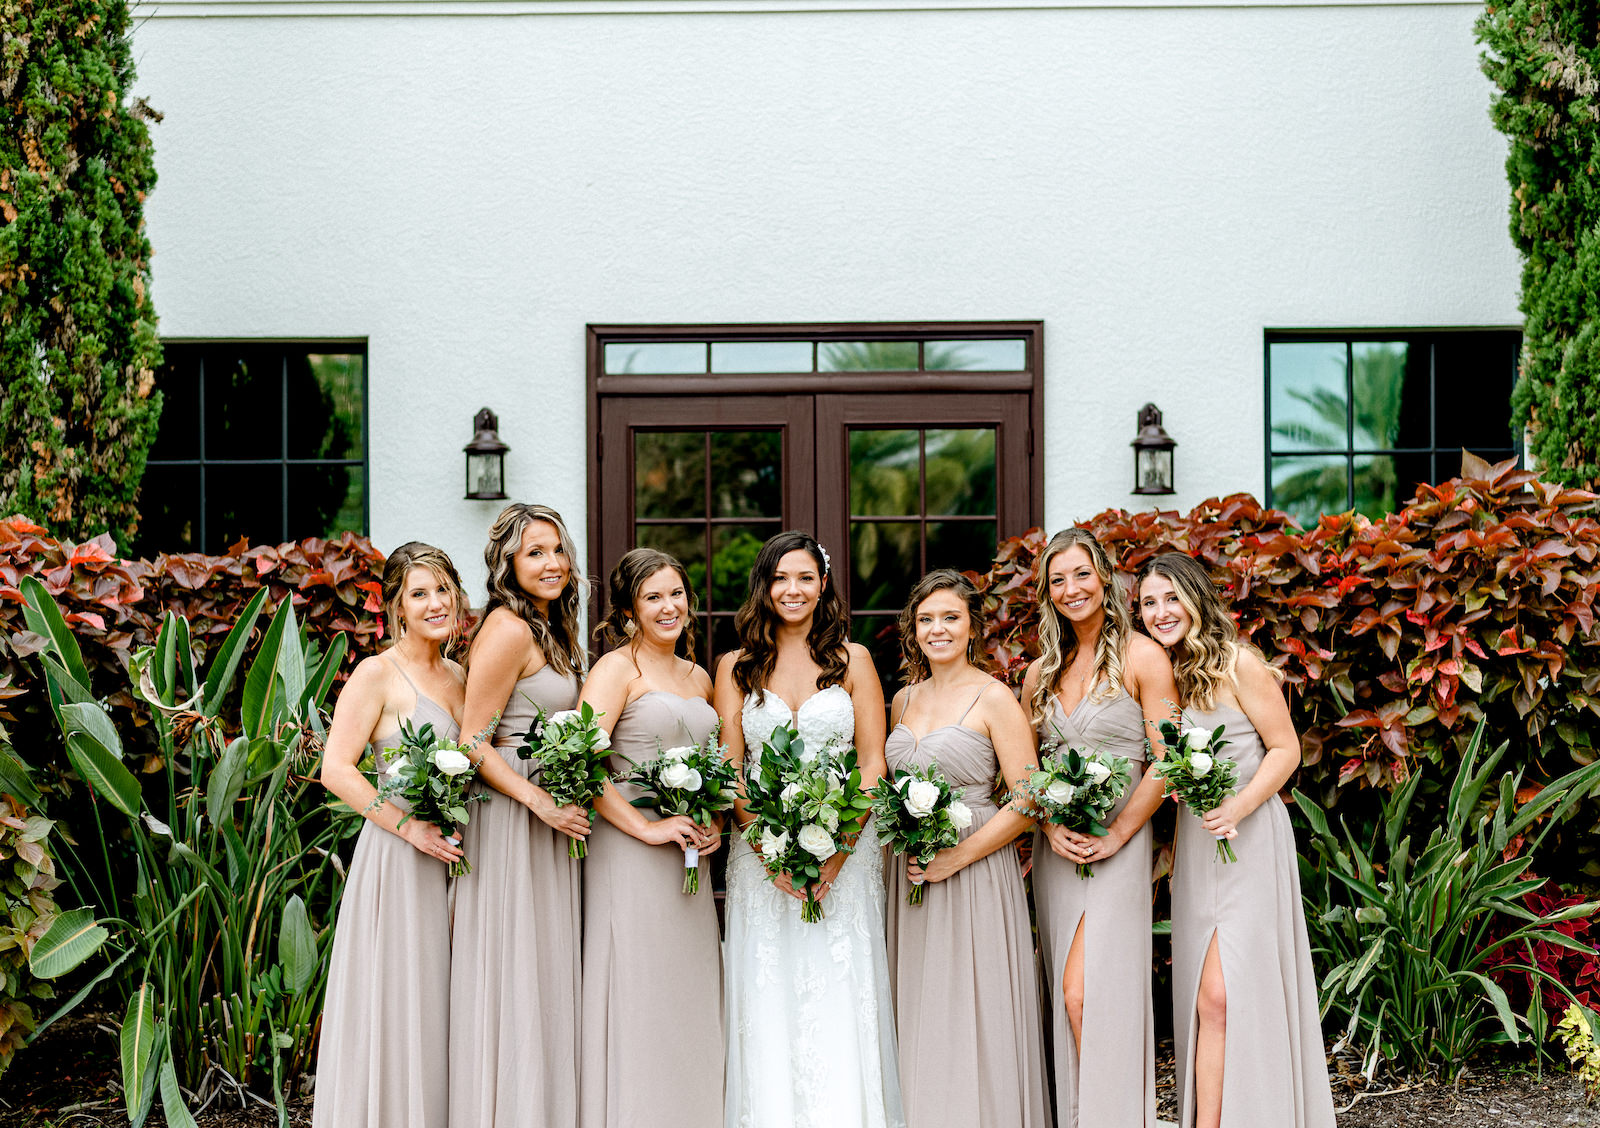 Bridal Party Outdoor Portrait at Tampa wedding Venue Westshore Yacht Club | Lace Strapless Sweetheart Scalloped Edge Train Wedding Dress Bridal Gown | Bridesmaid Bouquets with Greenery and white Roses | Long Chiffon Taupe Champagne Neutral Bridesmaid Dresses by Lulu's | Dewitt for Love Photography